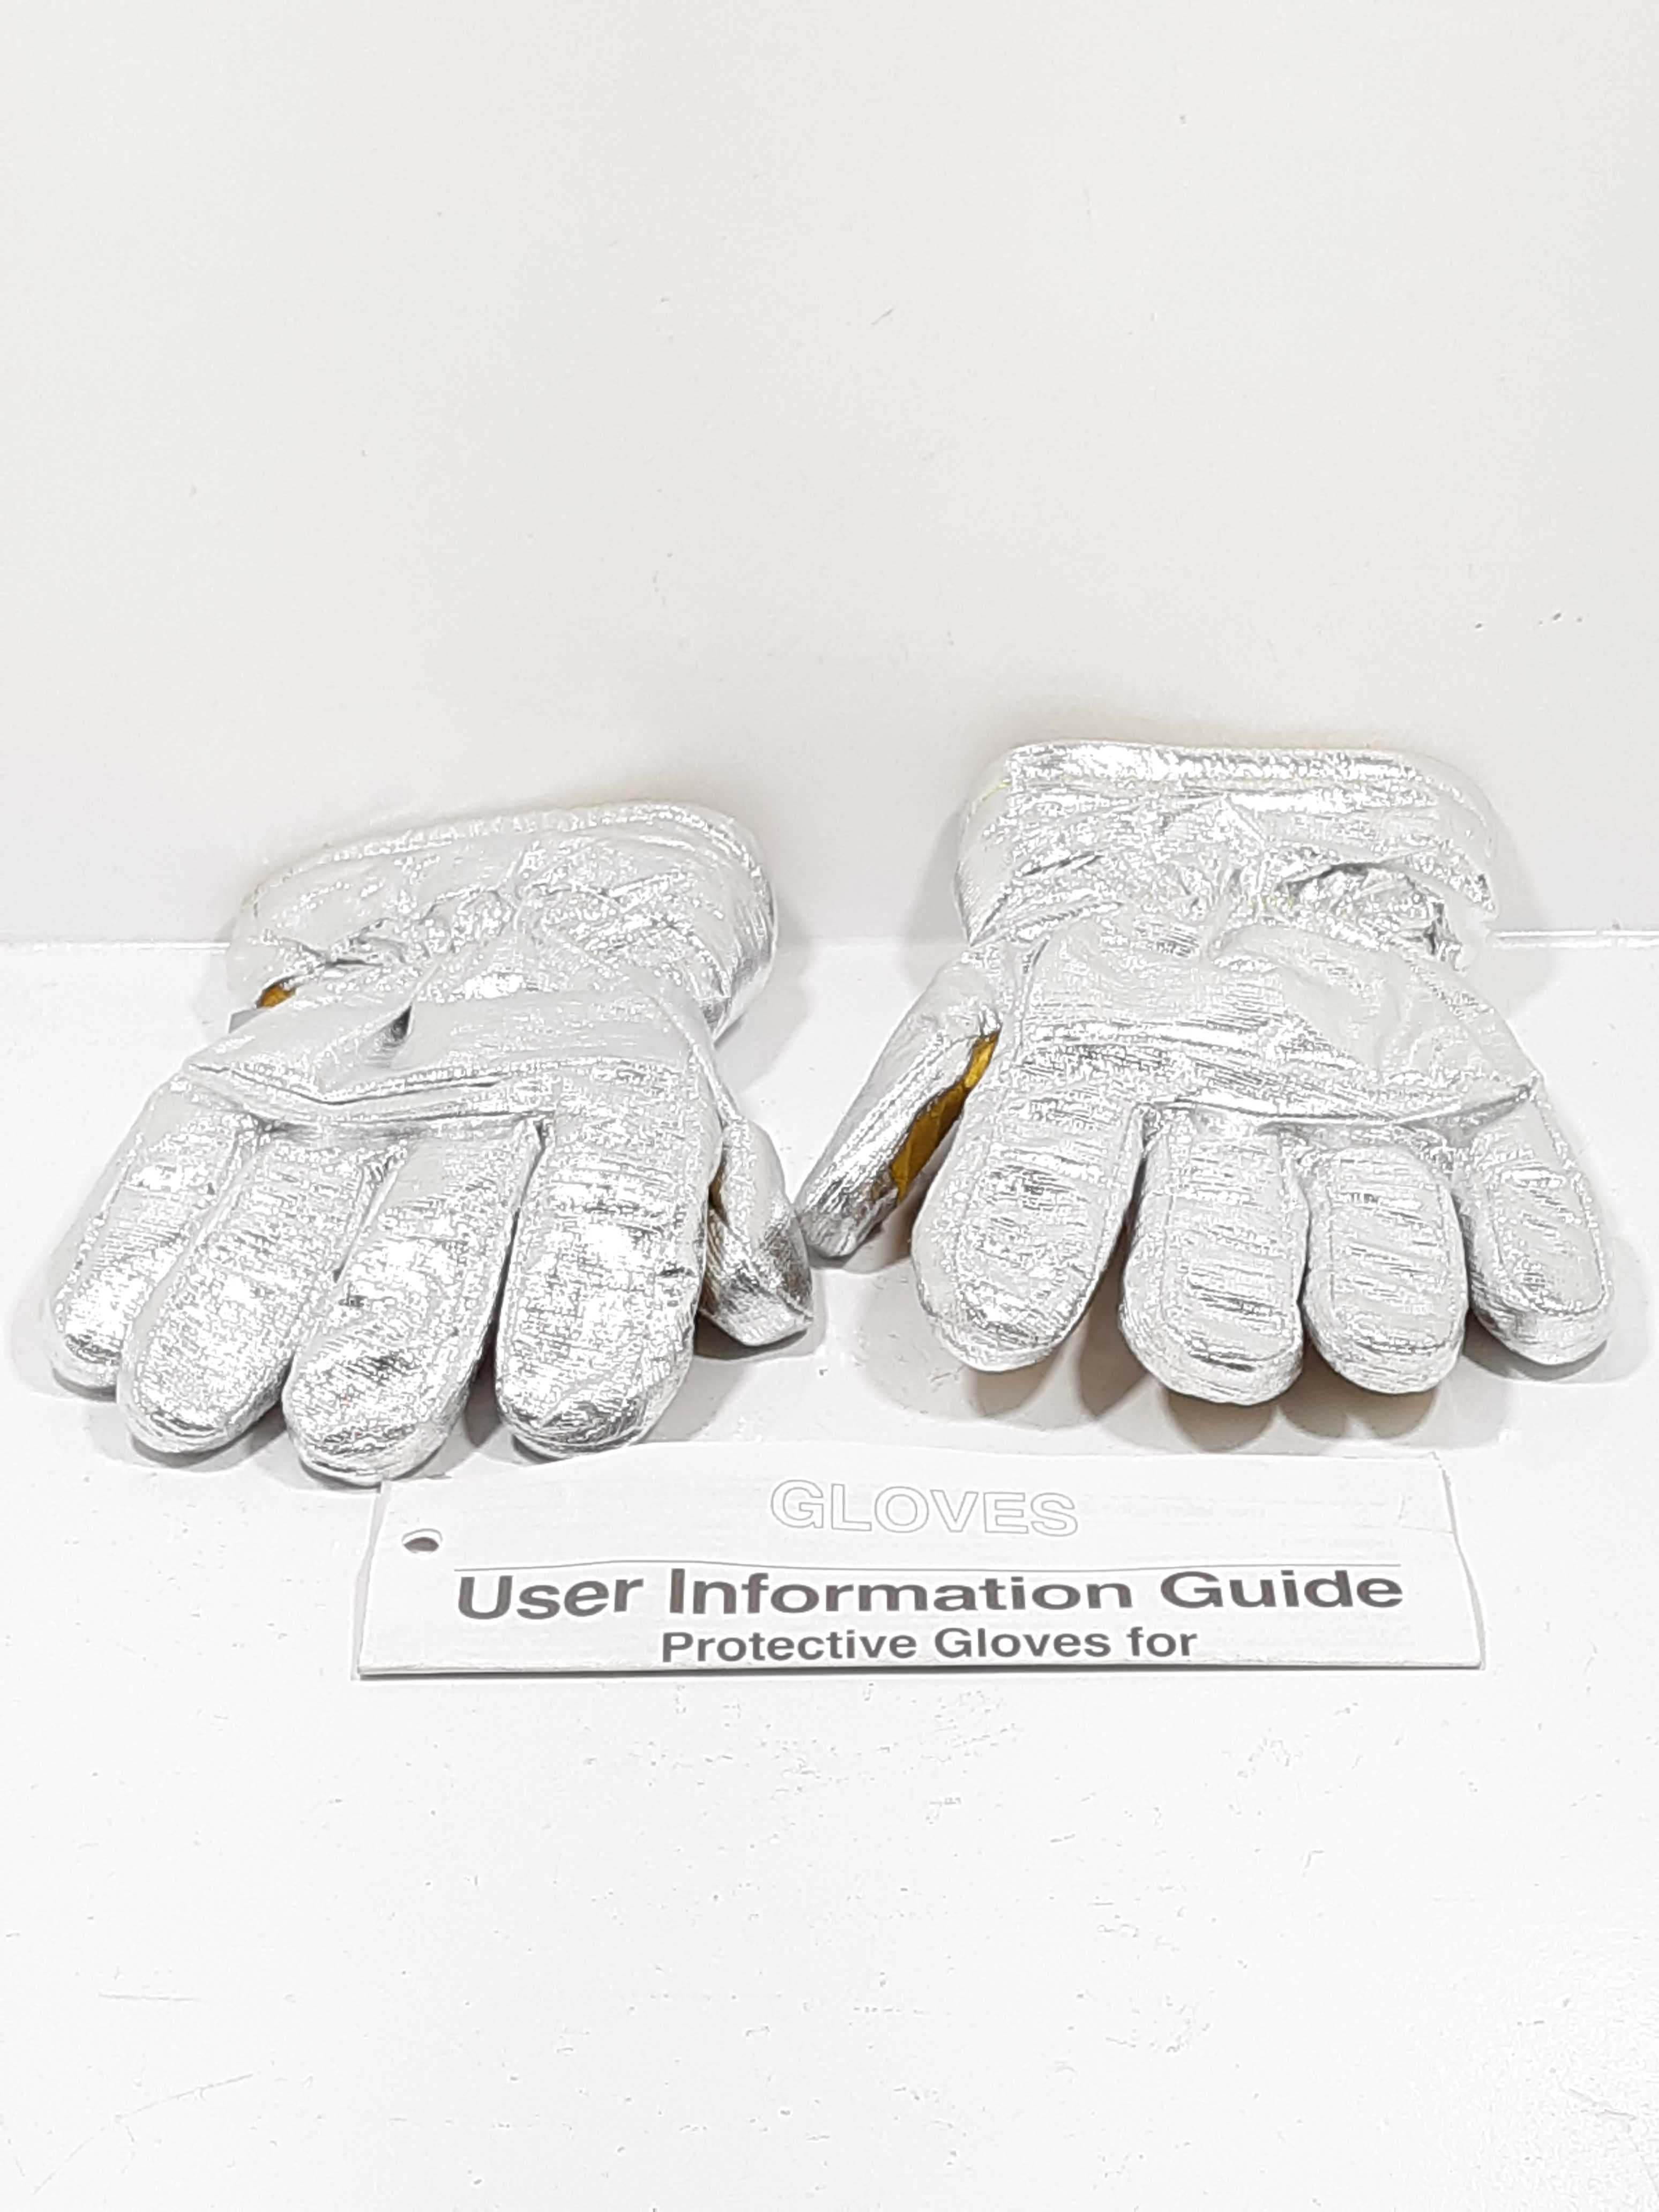 American Firewear GL-BPR-RGA-XL Aluminized Proximity Firefighting Gloves XL